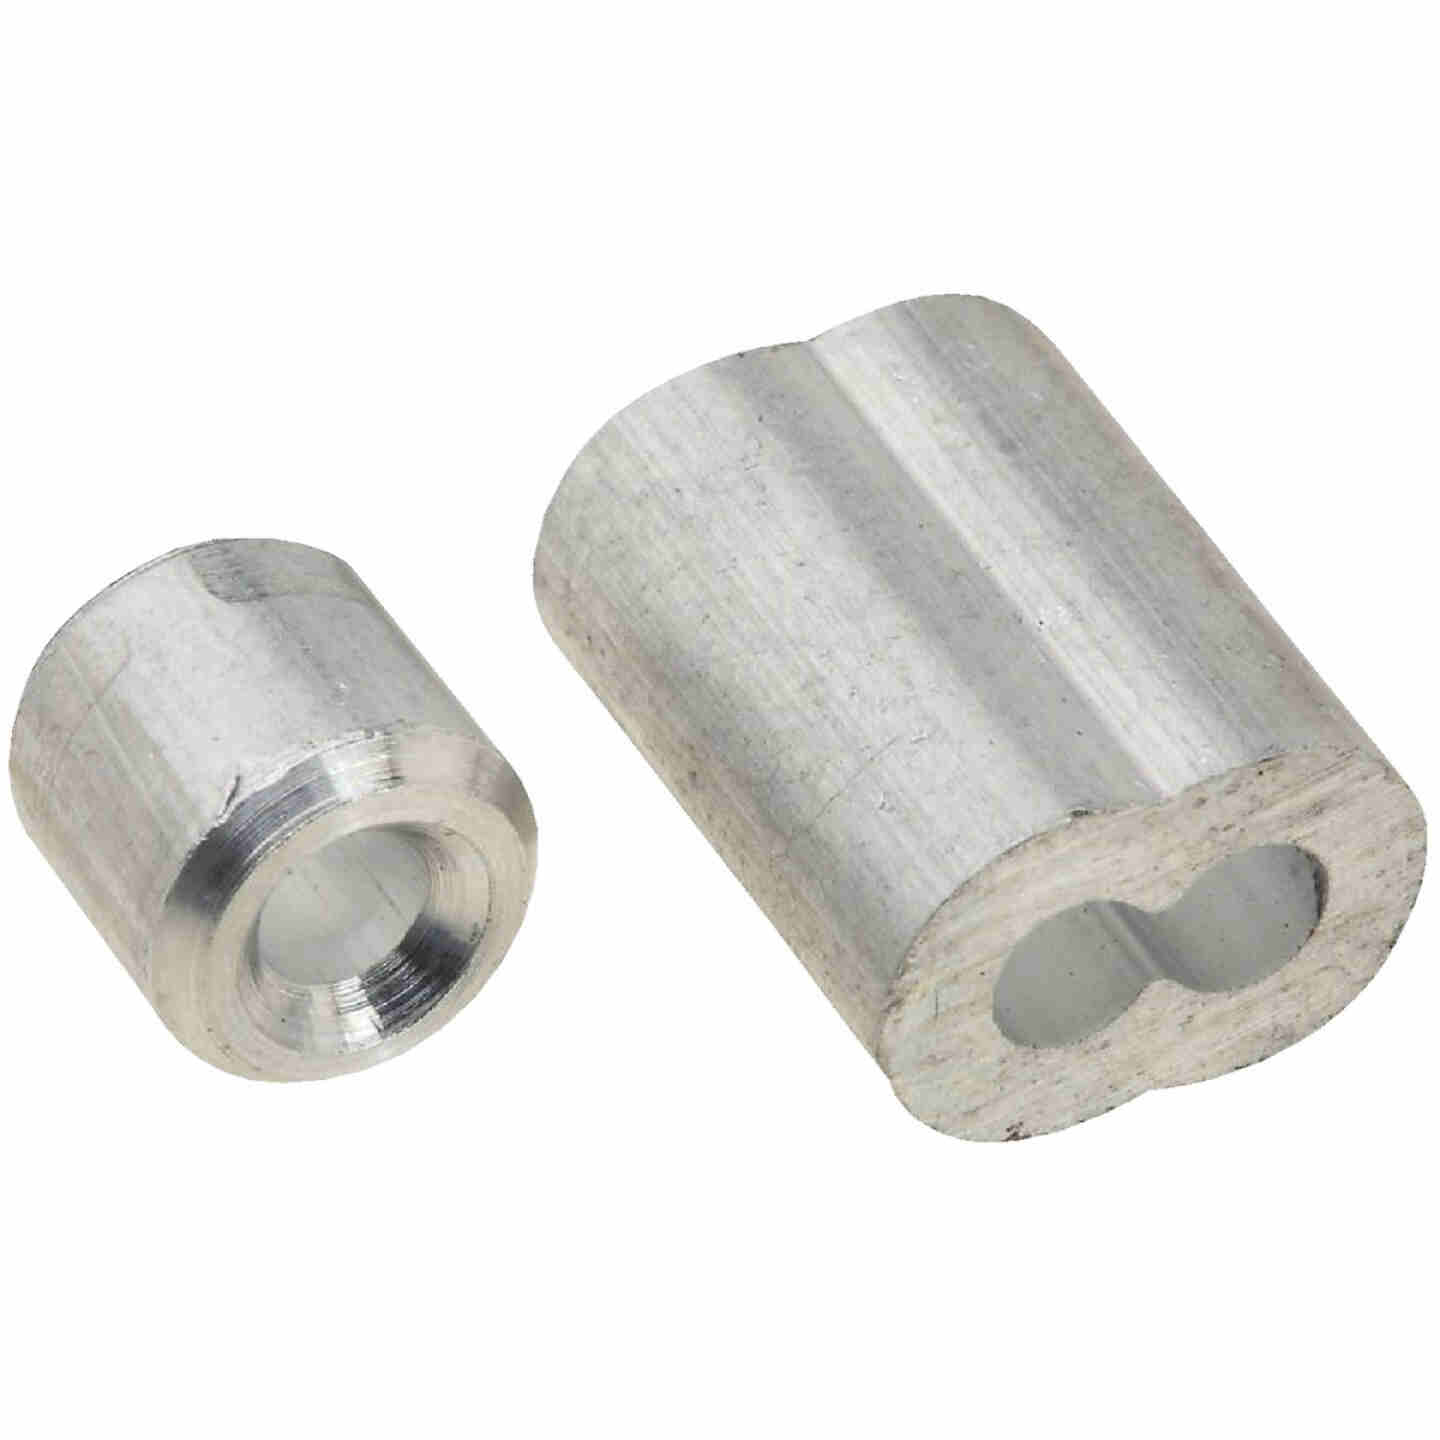 "Prime-Line Cable Ferrules and Stops, 1/8"", Aluminum Image 1"